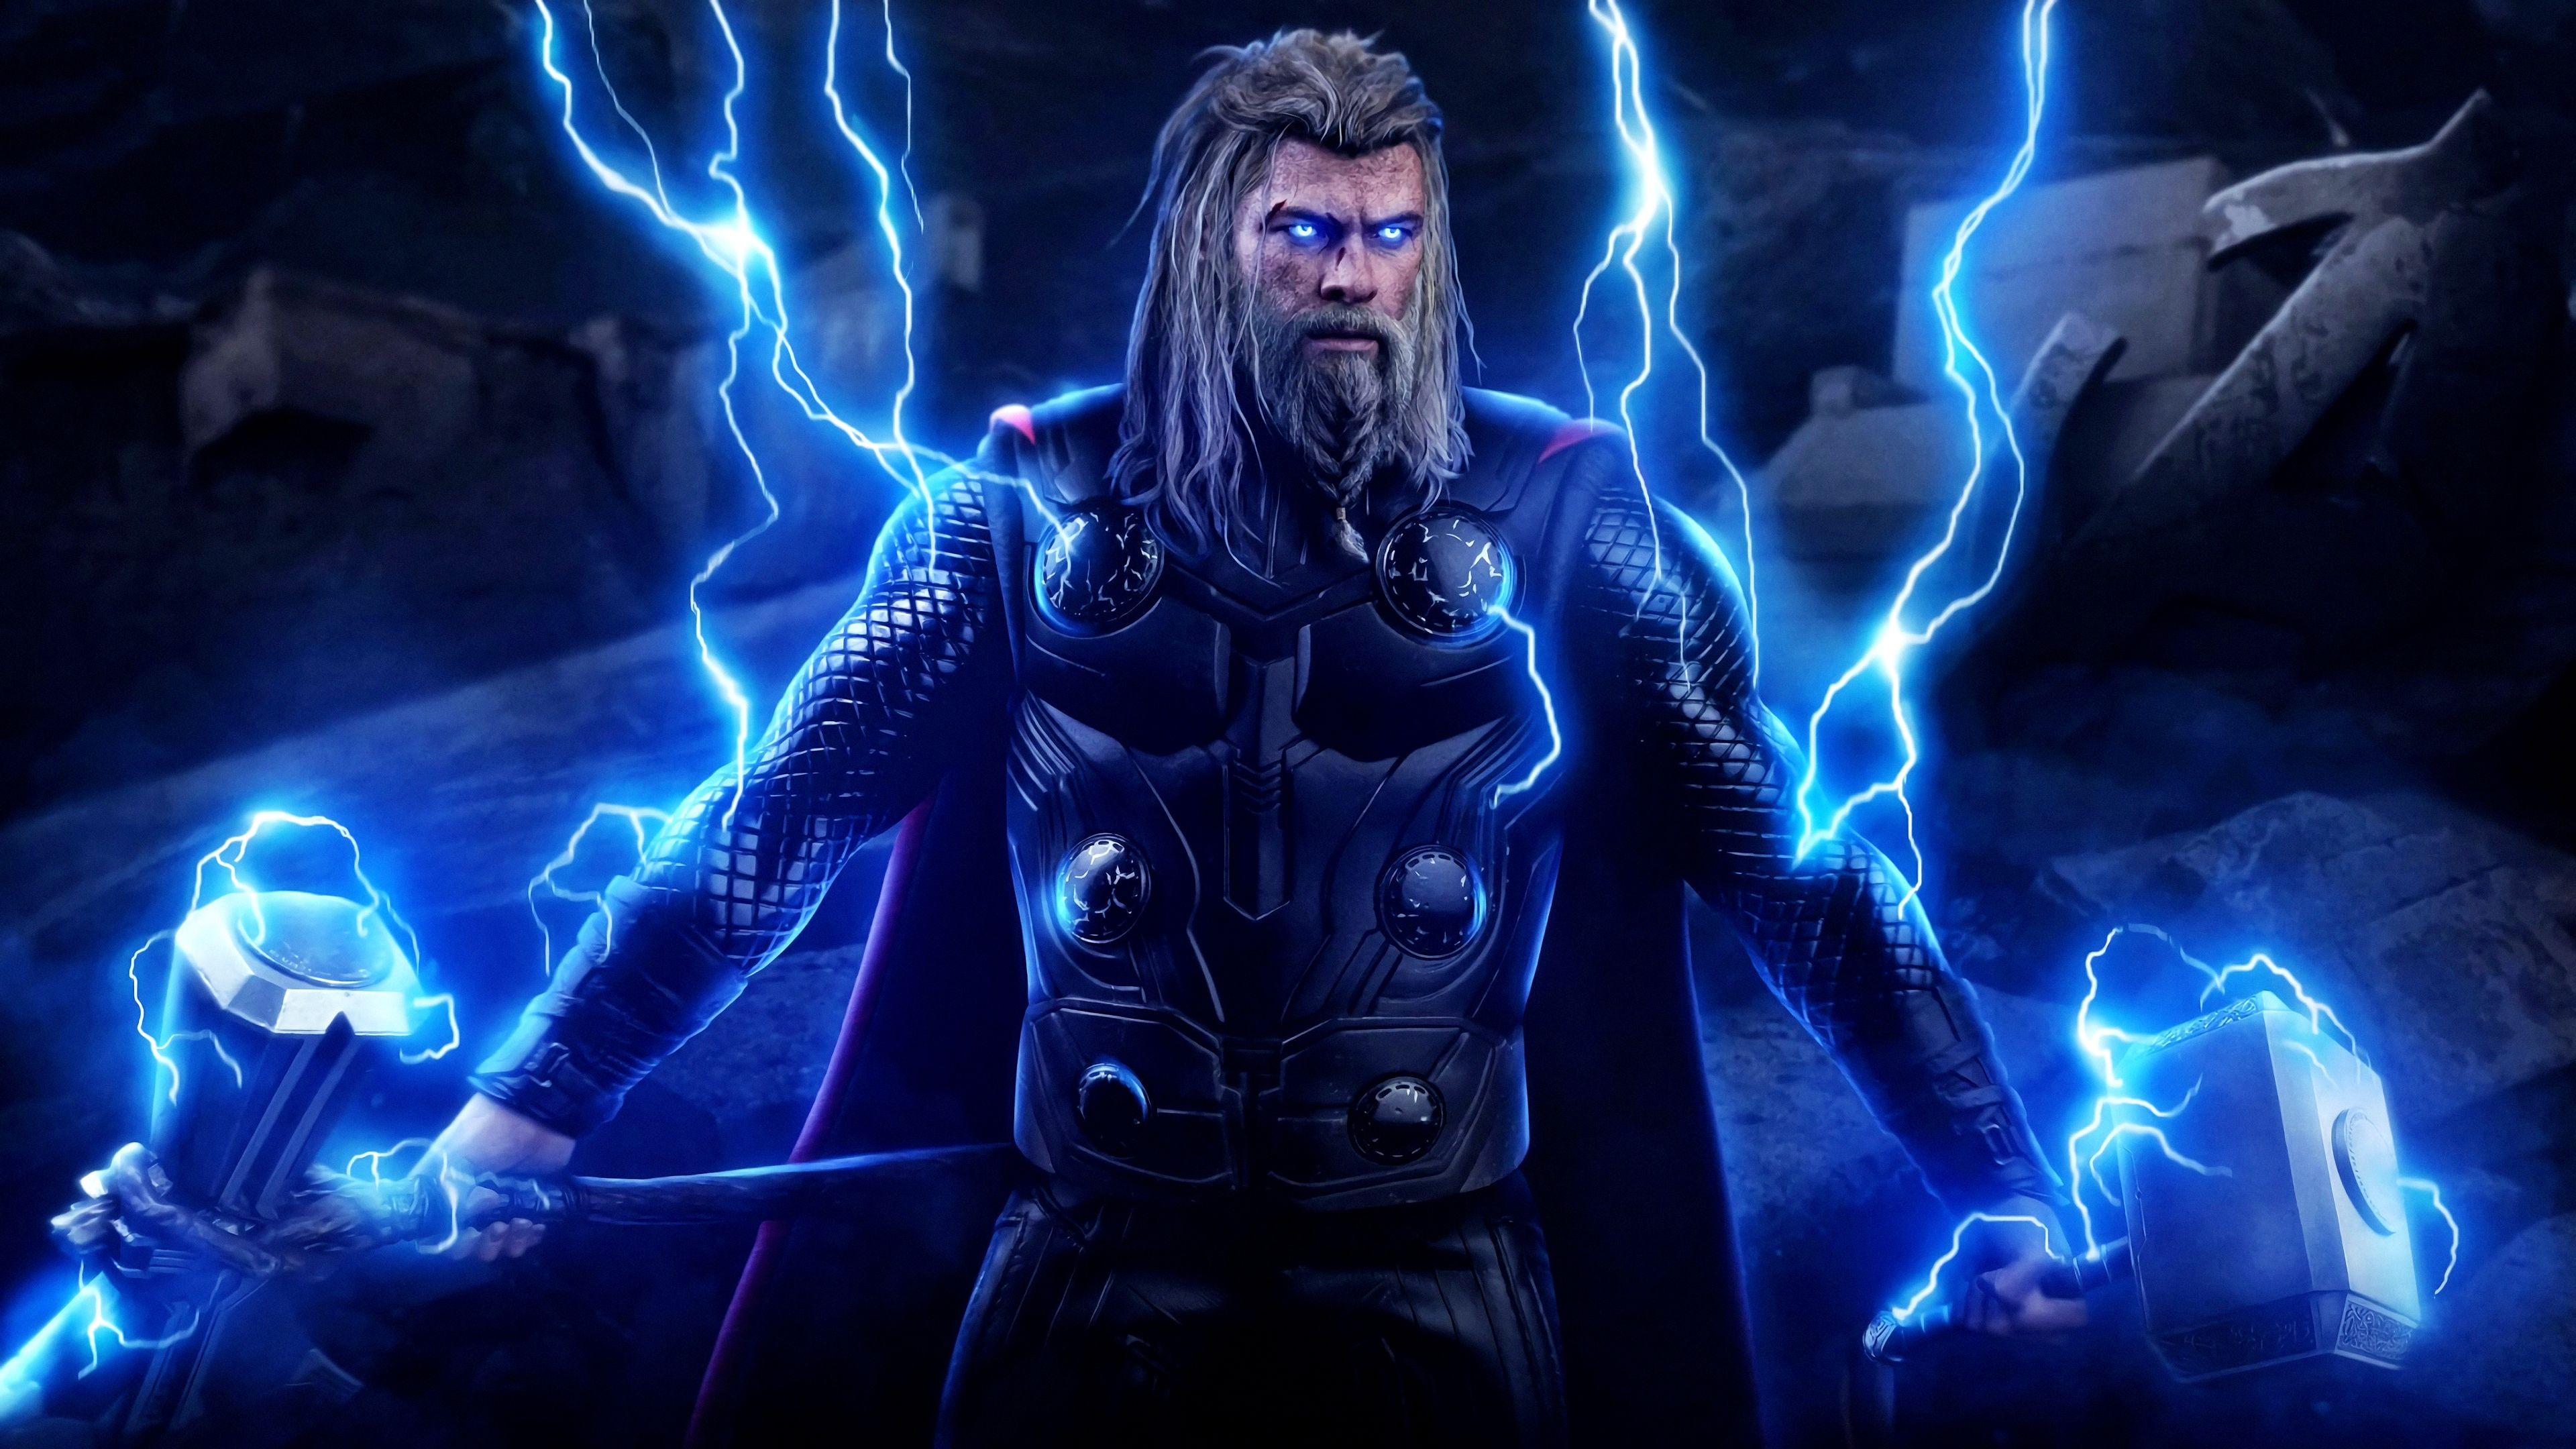 Endgame 4k Wallpaper Mobile Ideas In 2020 Thor Wallpaper New Thor Chris Hemsworth